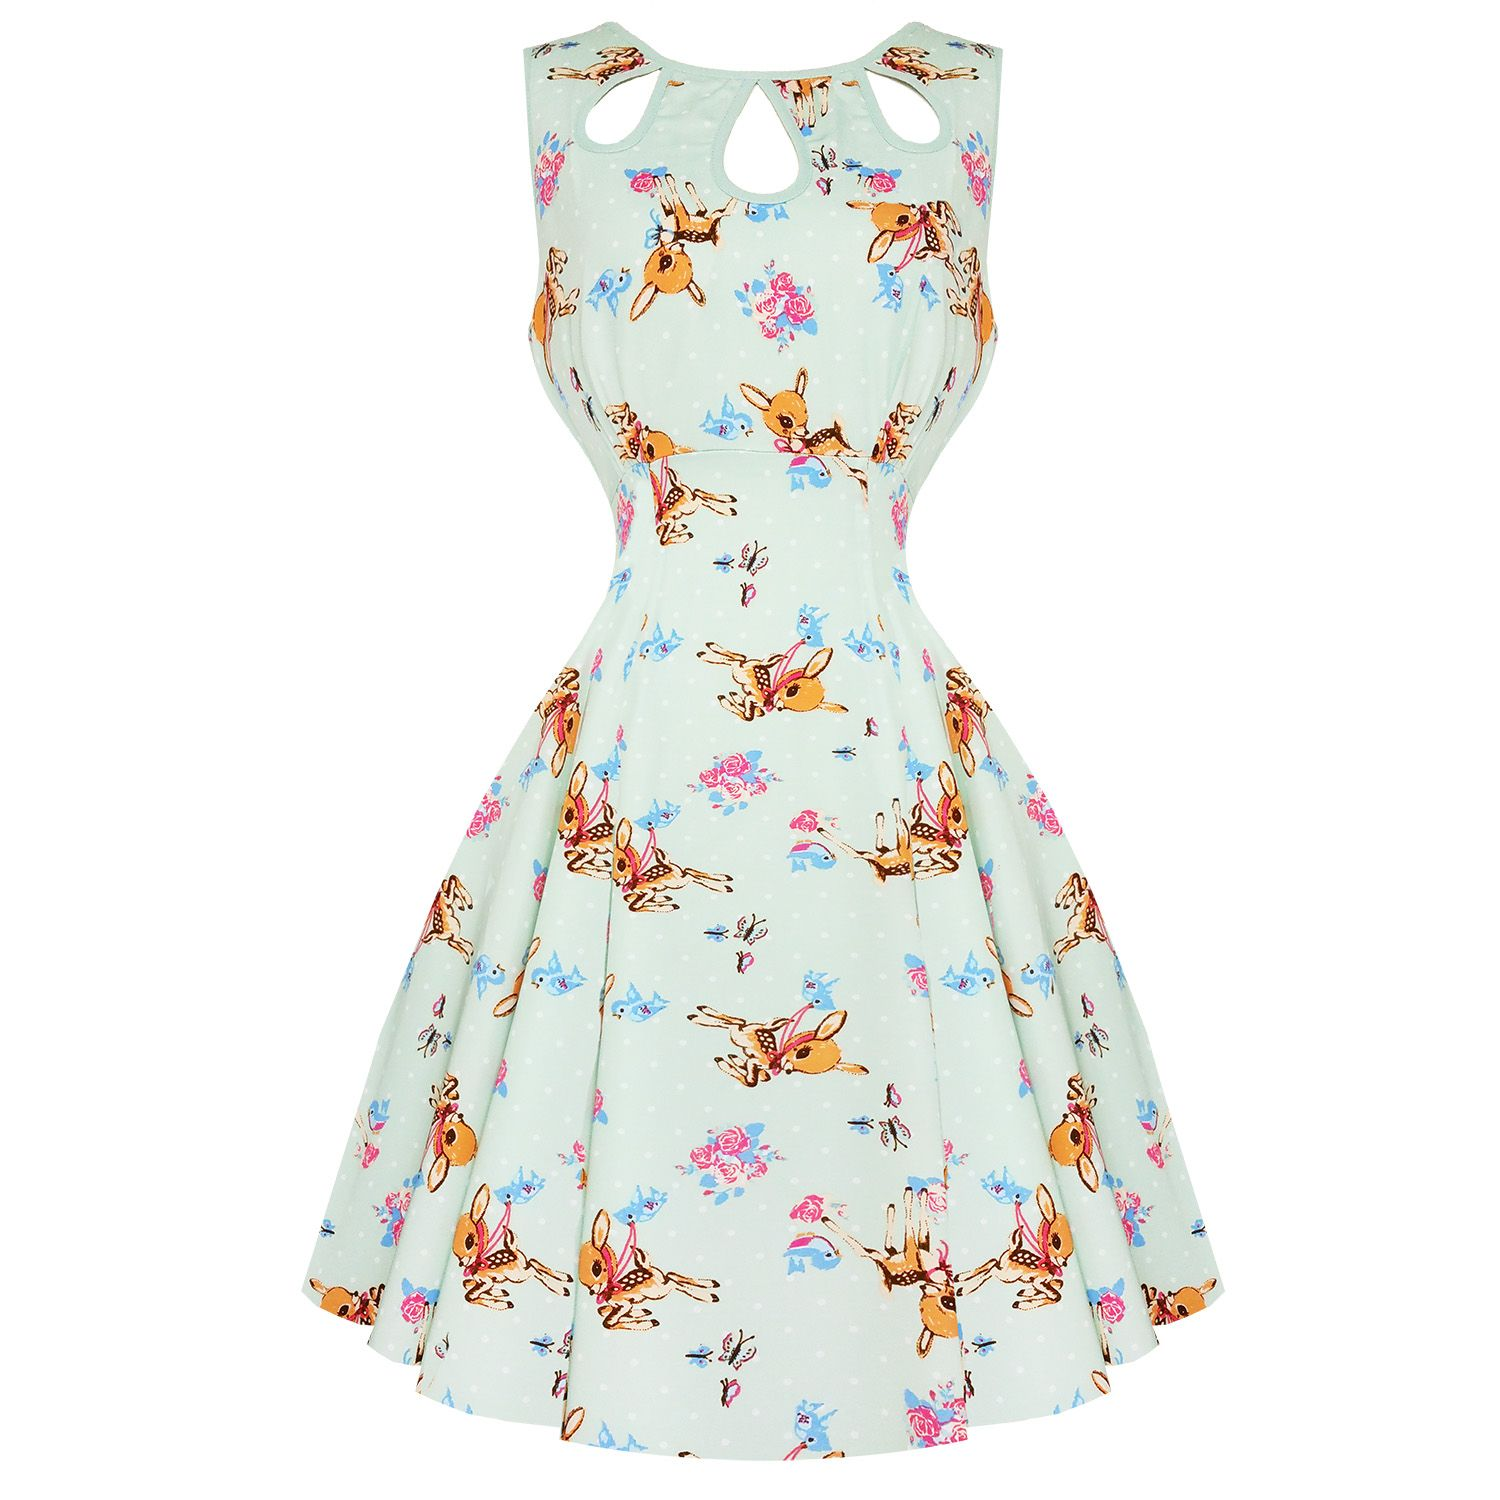 Dancing Days Whimsical 1950s Mini Dress Dresses Dancing